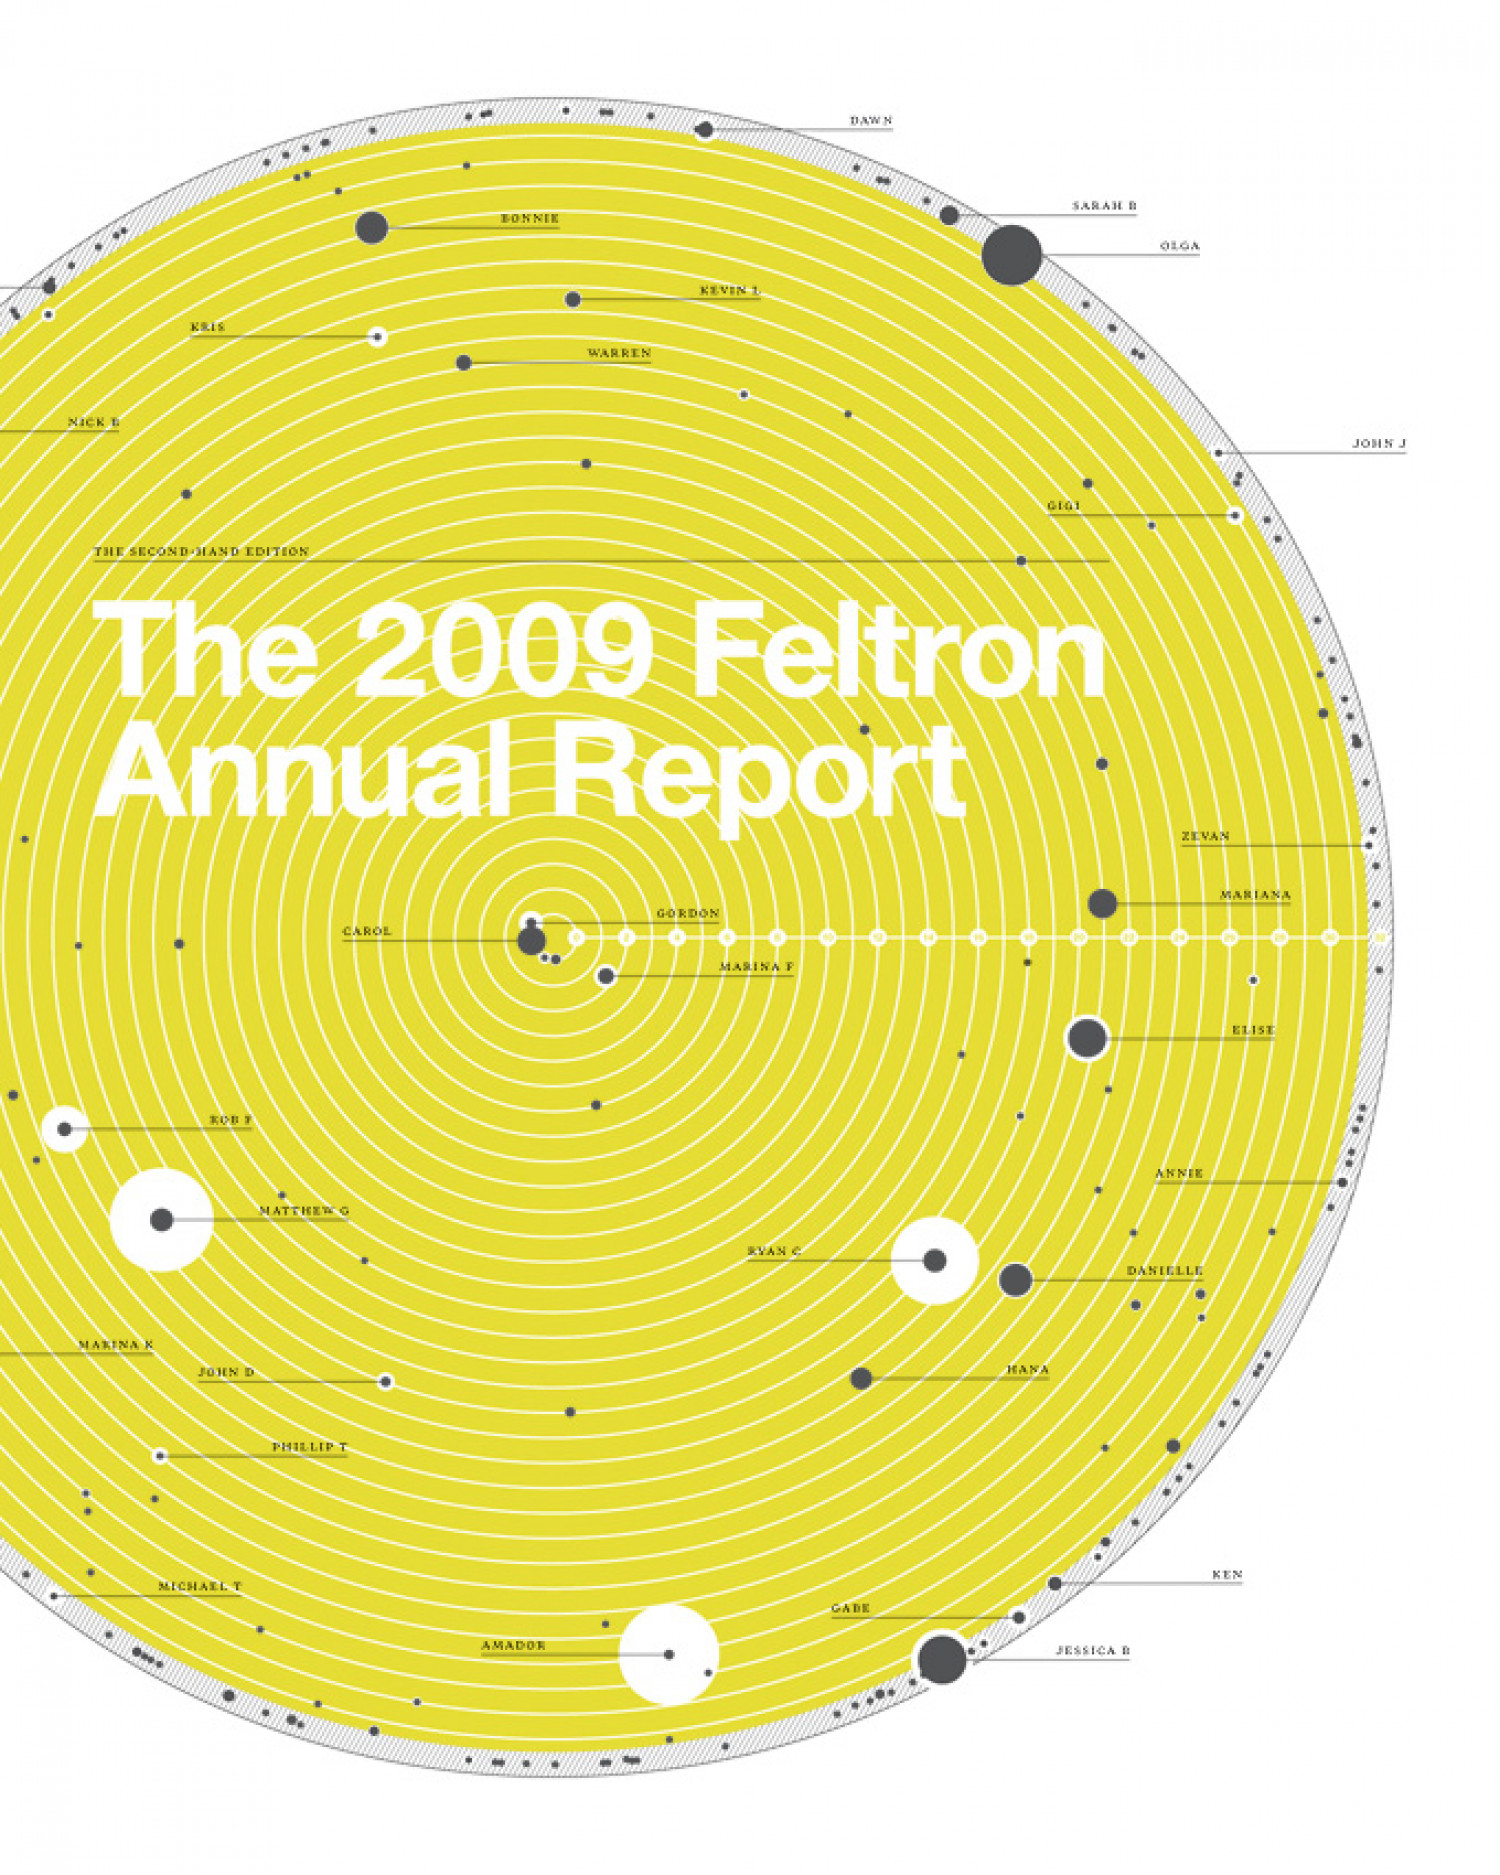 The 2009 Feltron Annual Report Infographic